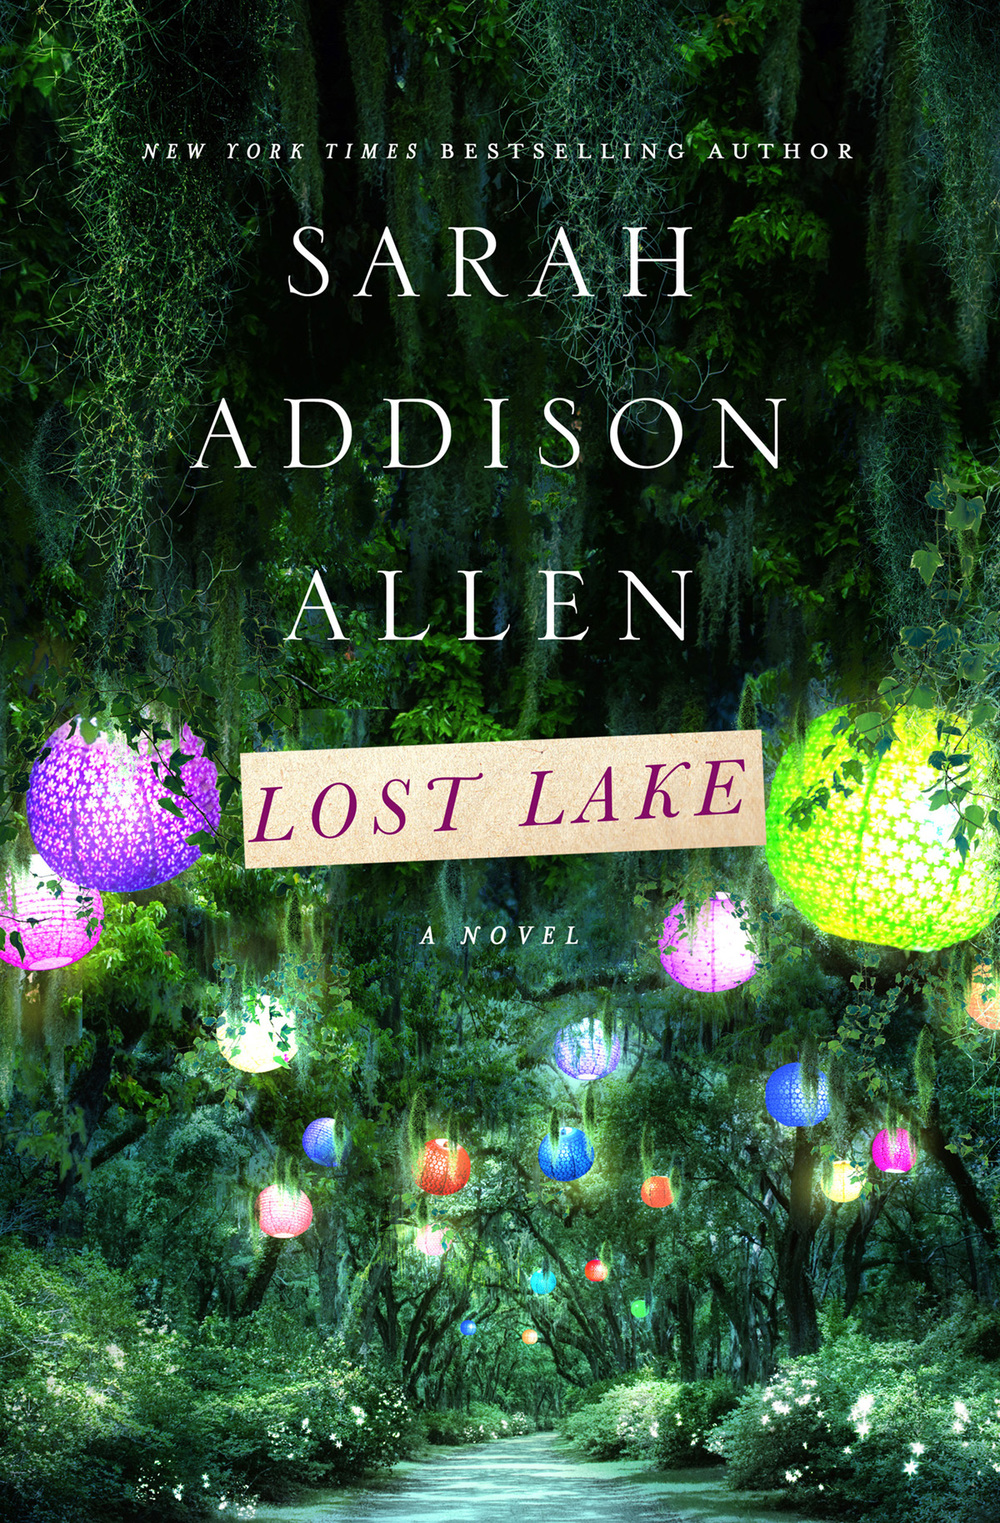 Lost Lake by Sarah Addison Allen  Amazon  |  Goodreads